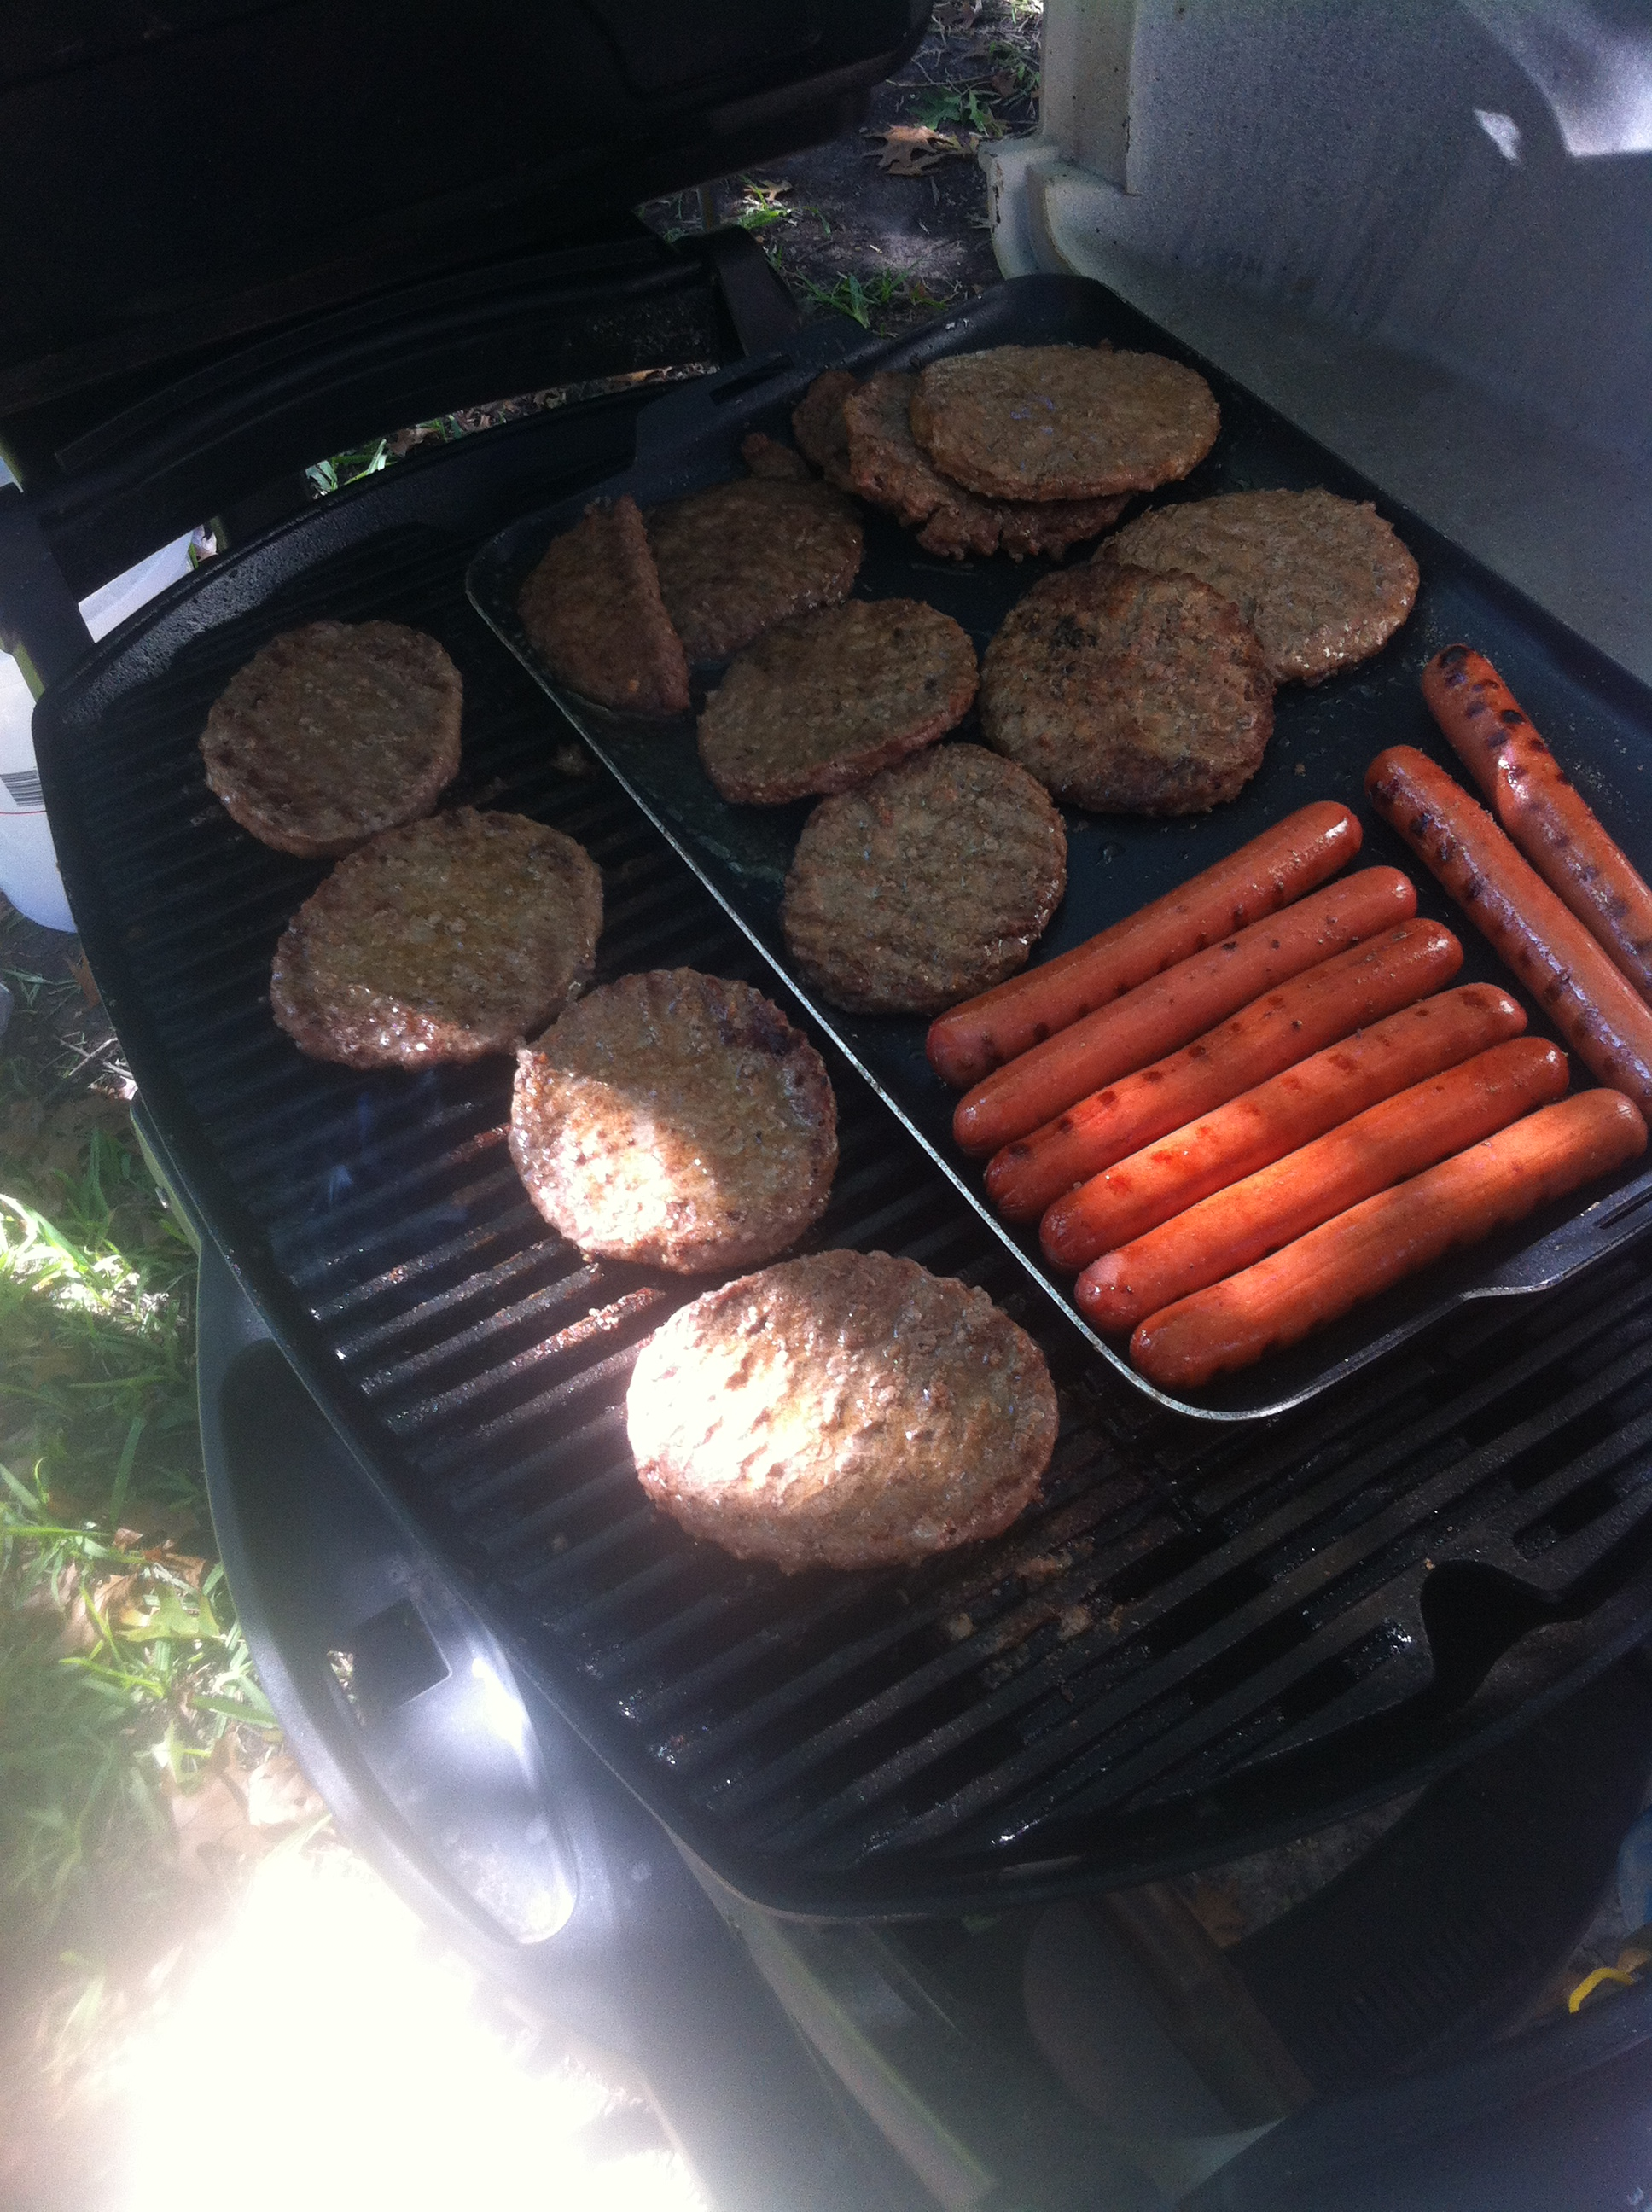 Hotdogs and hamburgers are mainstays at tailgates.